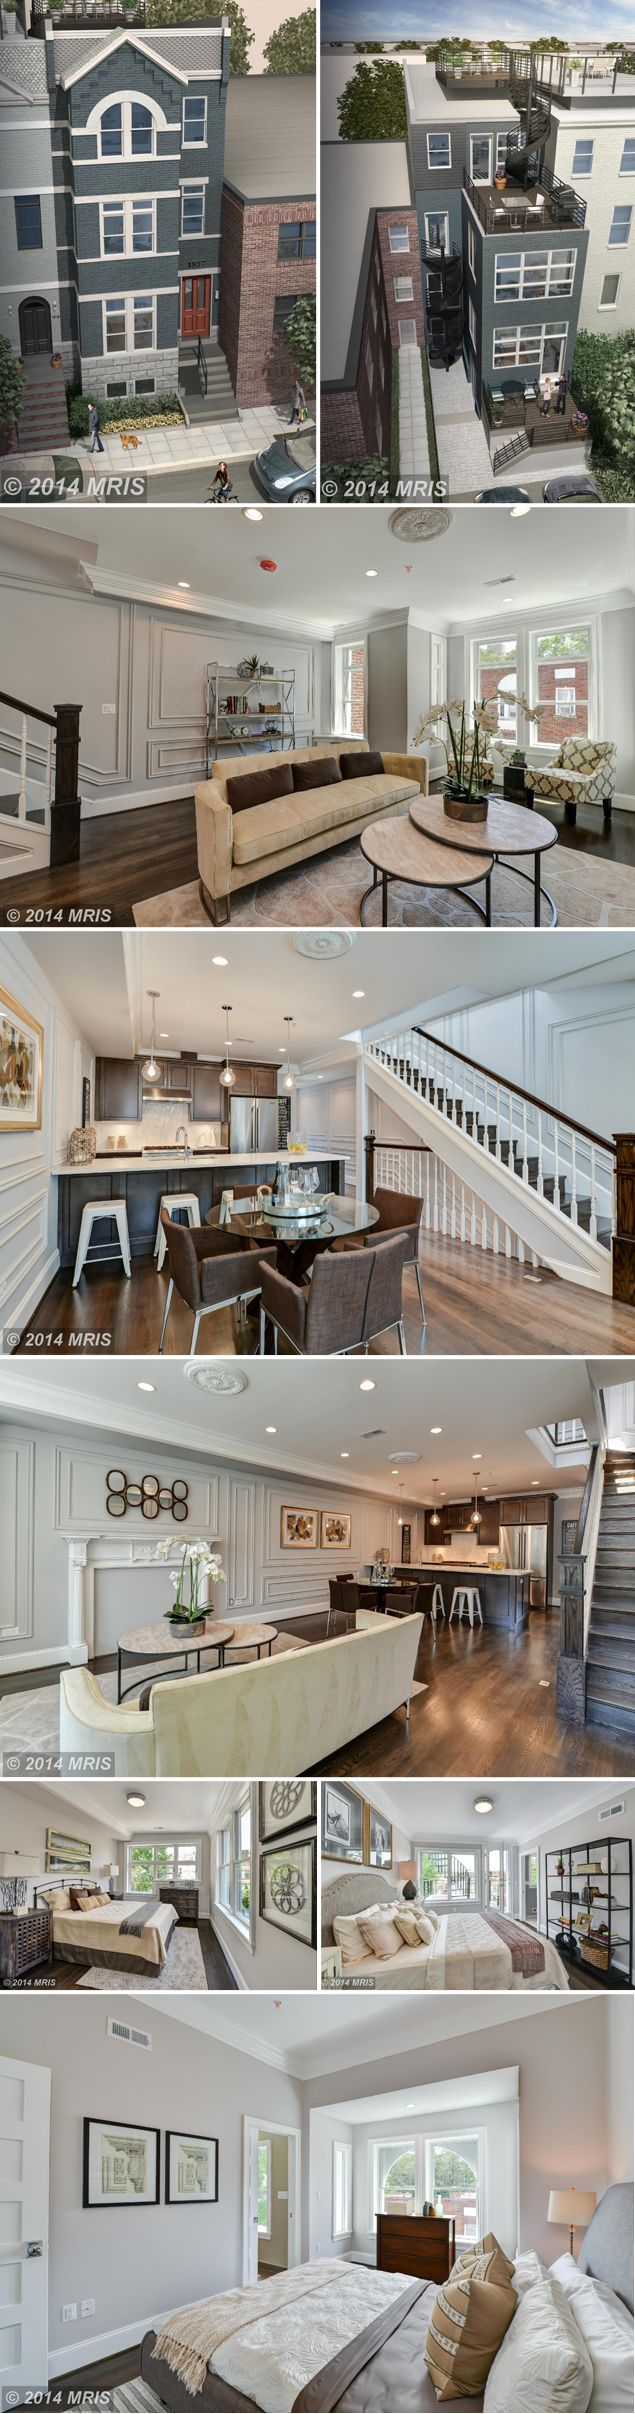 163 best Real Estate images on Pinterest Dream houses Future